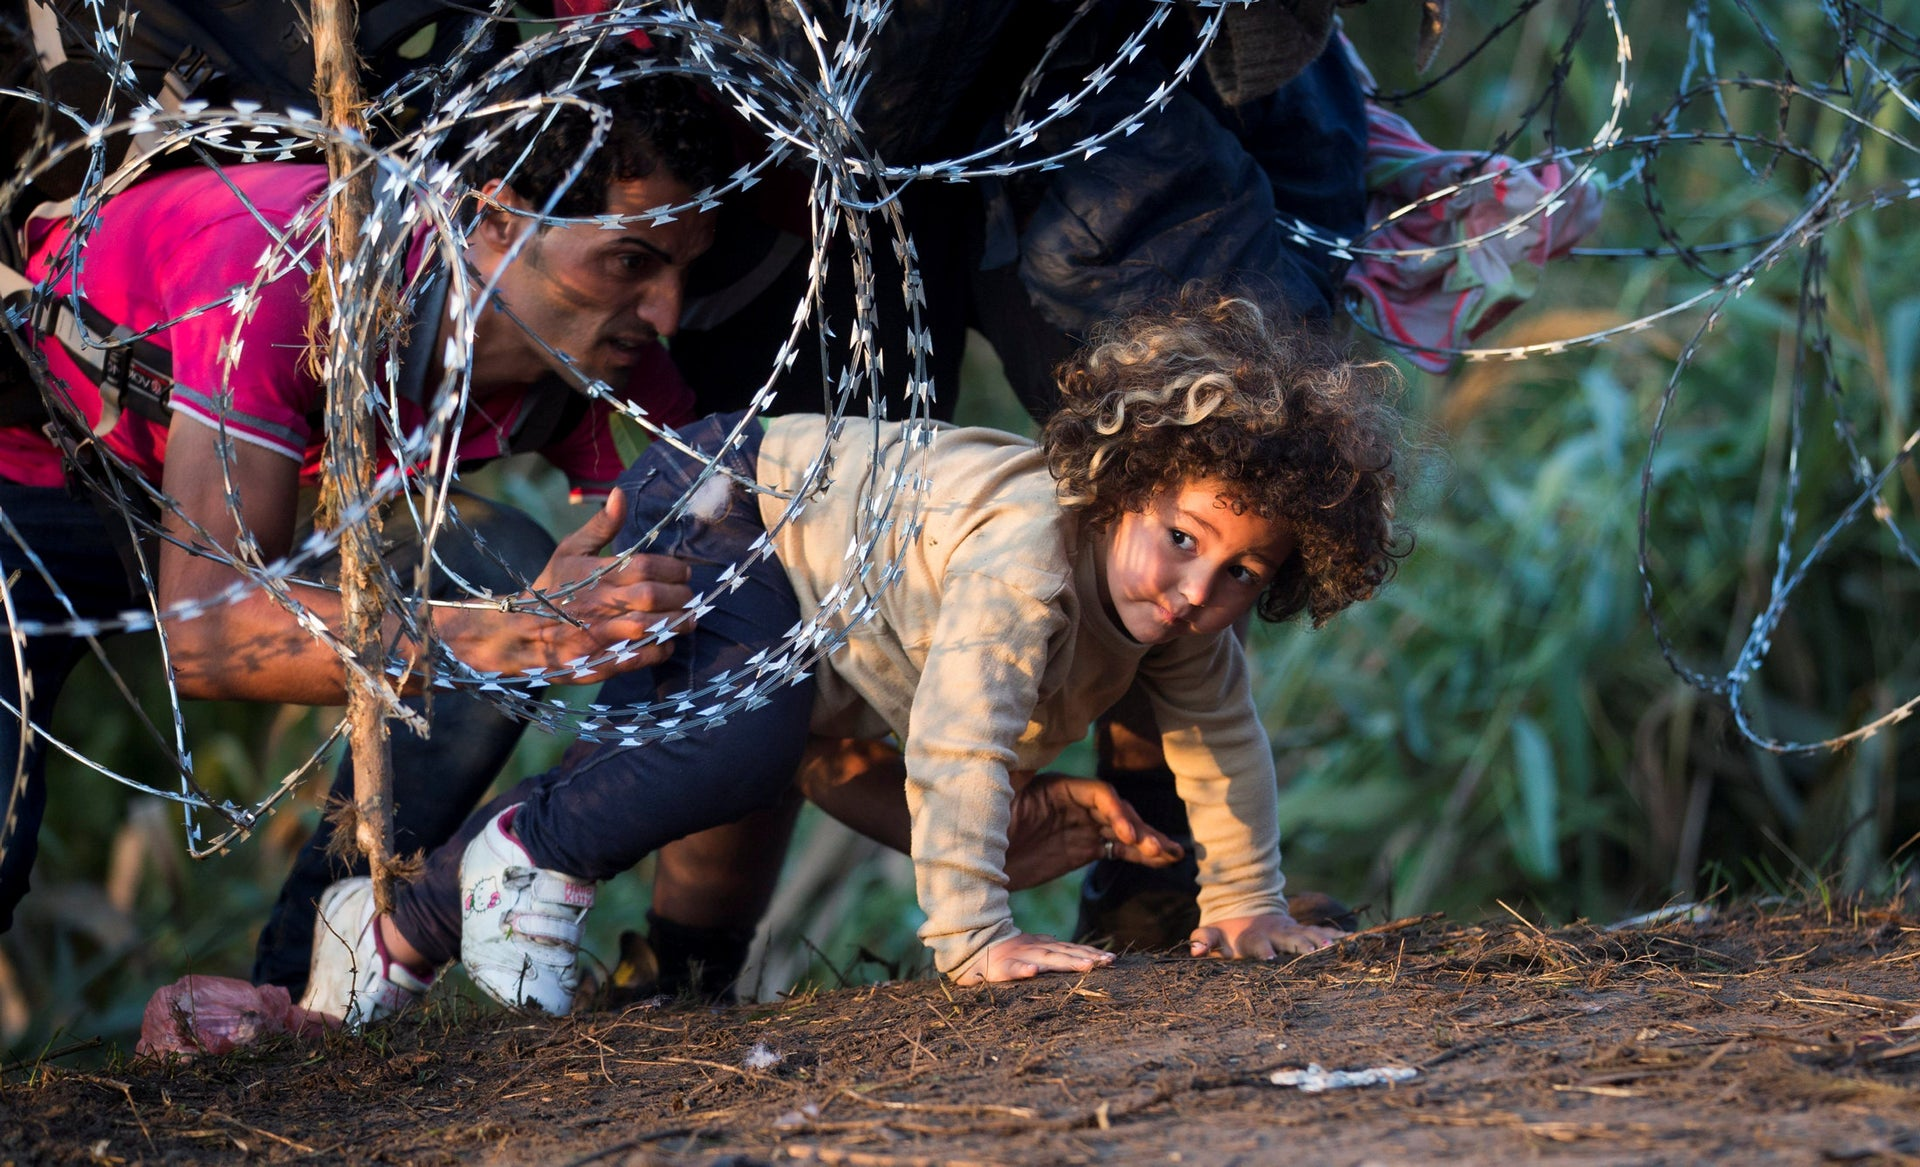 FILE - In this Thursday, Aug. 27, 2015 file photo, a child is helped cross from Serbia to Hungary through the barbed wire fence near Roszke, southern Hungary.